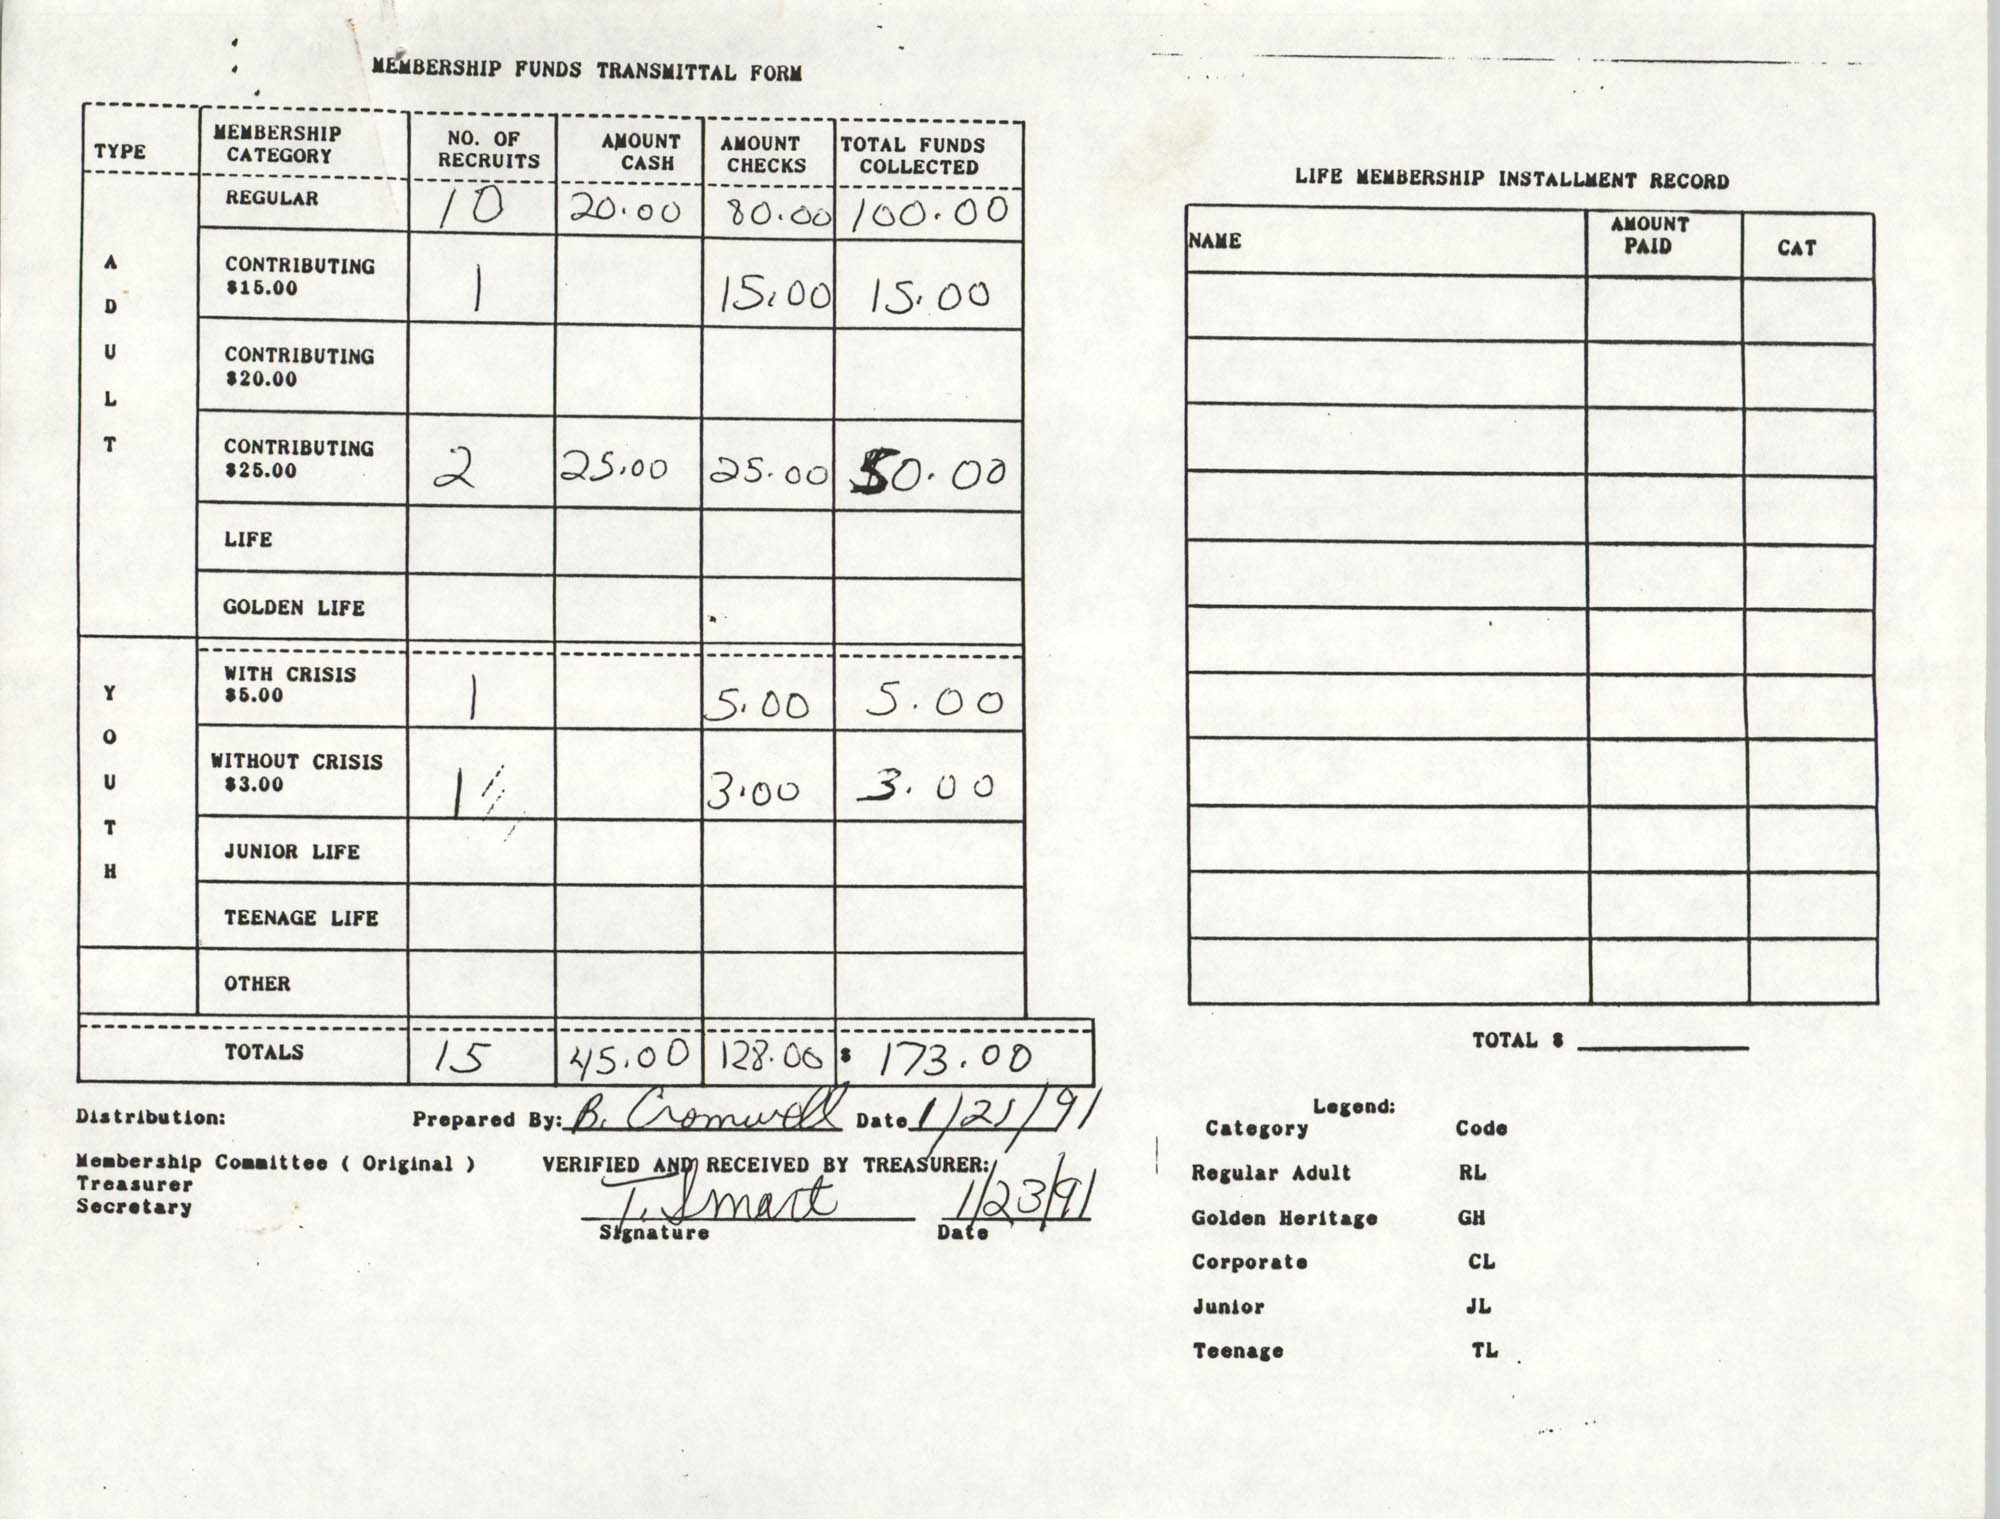 Charleston Branch of the NAACP Funds Transmittal Forms, January 1991, Page 2